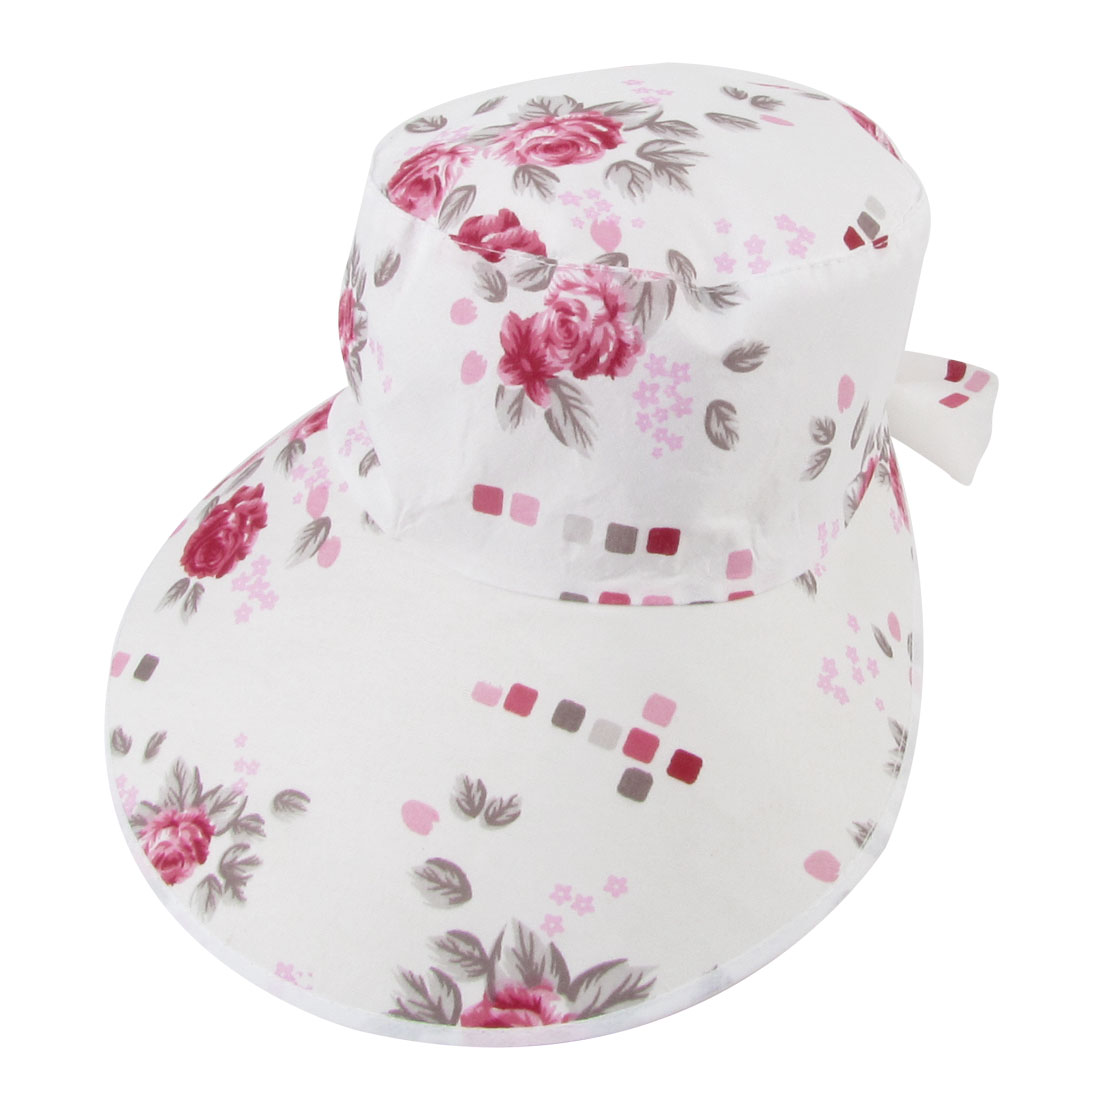 Lady Florals Pattern Wide Brim Outdoor Beach Visor Hat Cap Red White